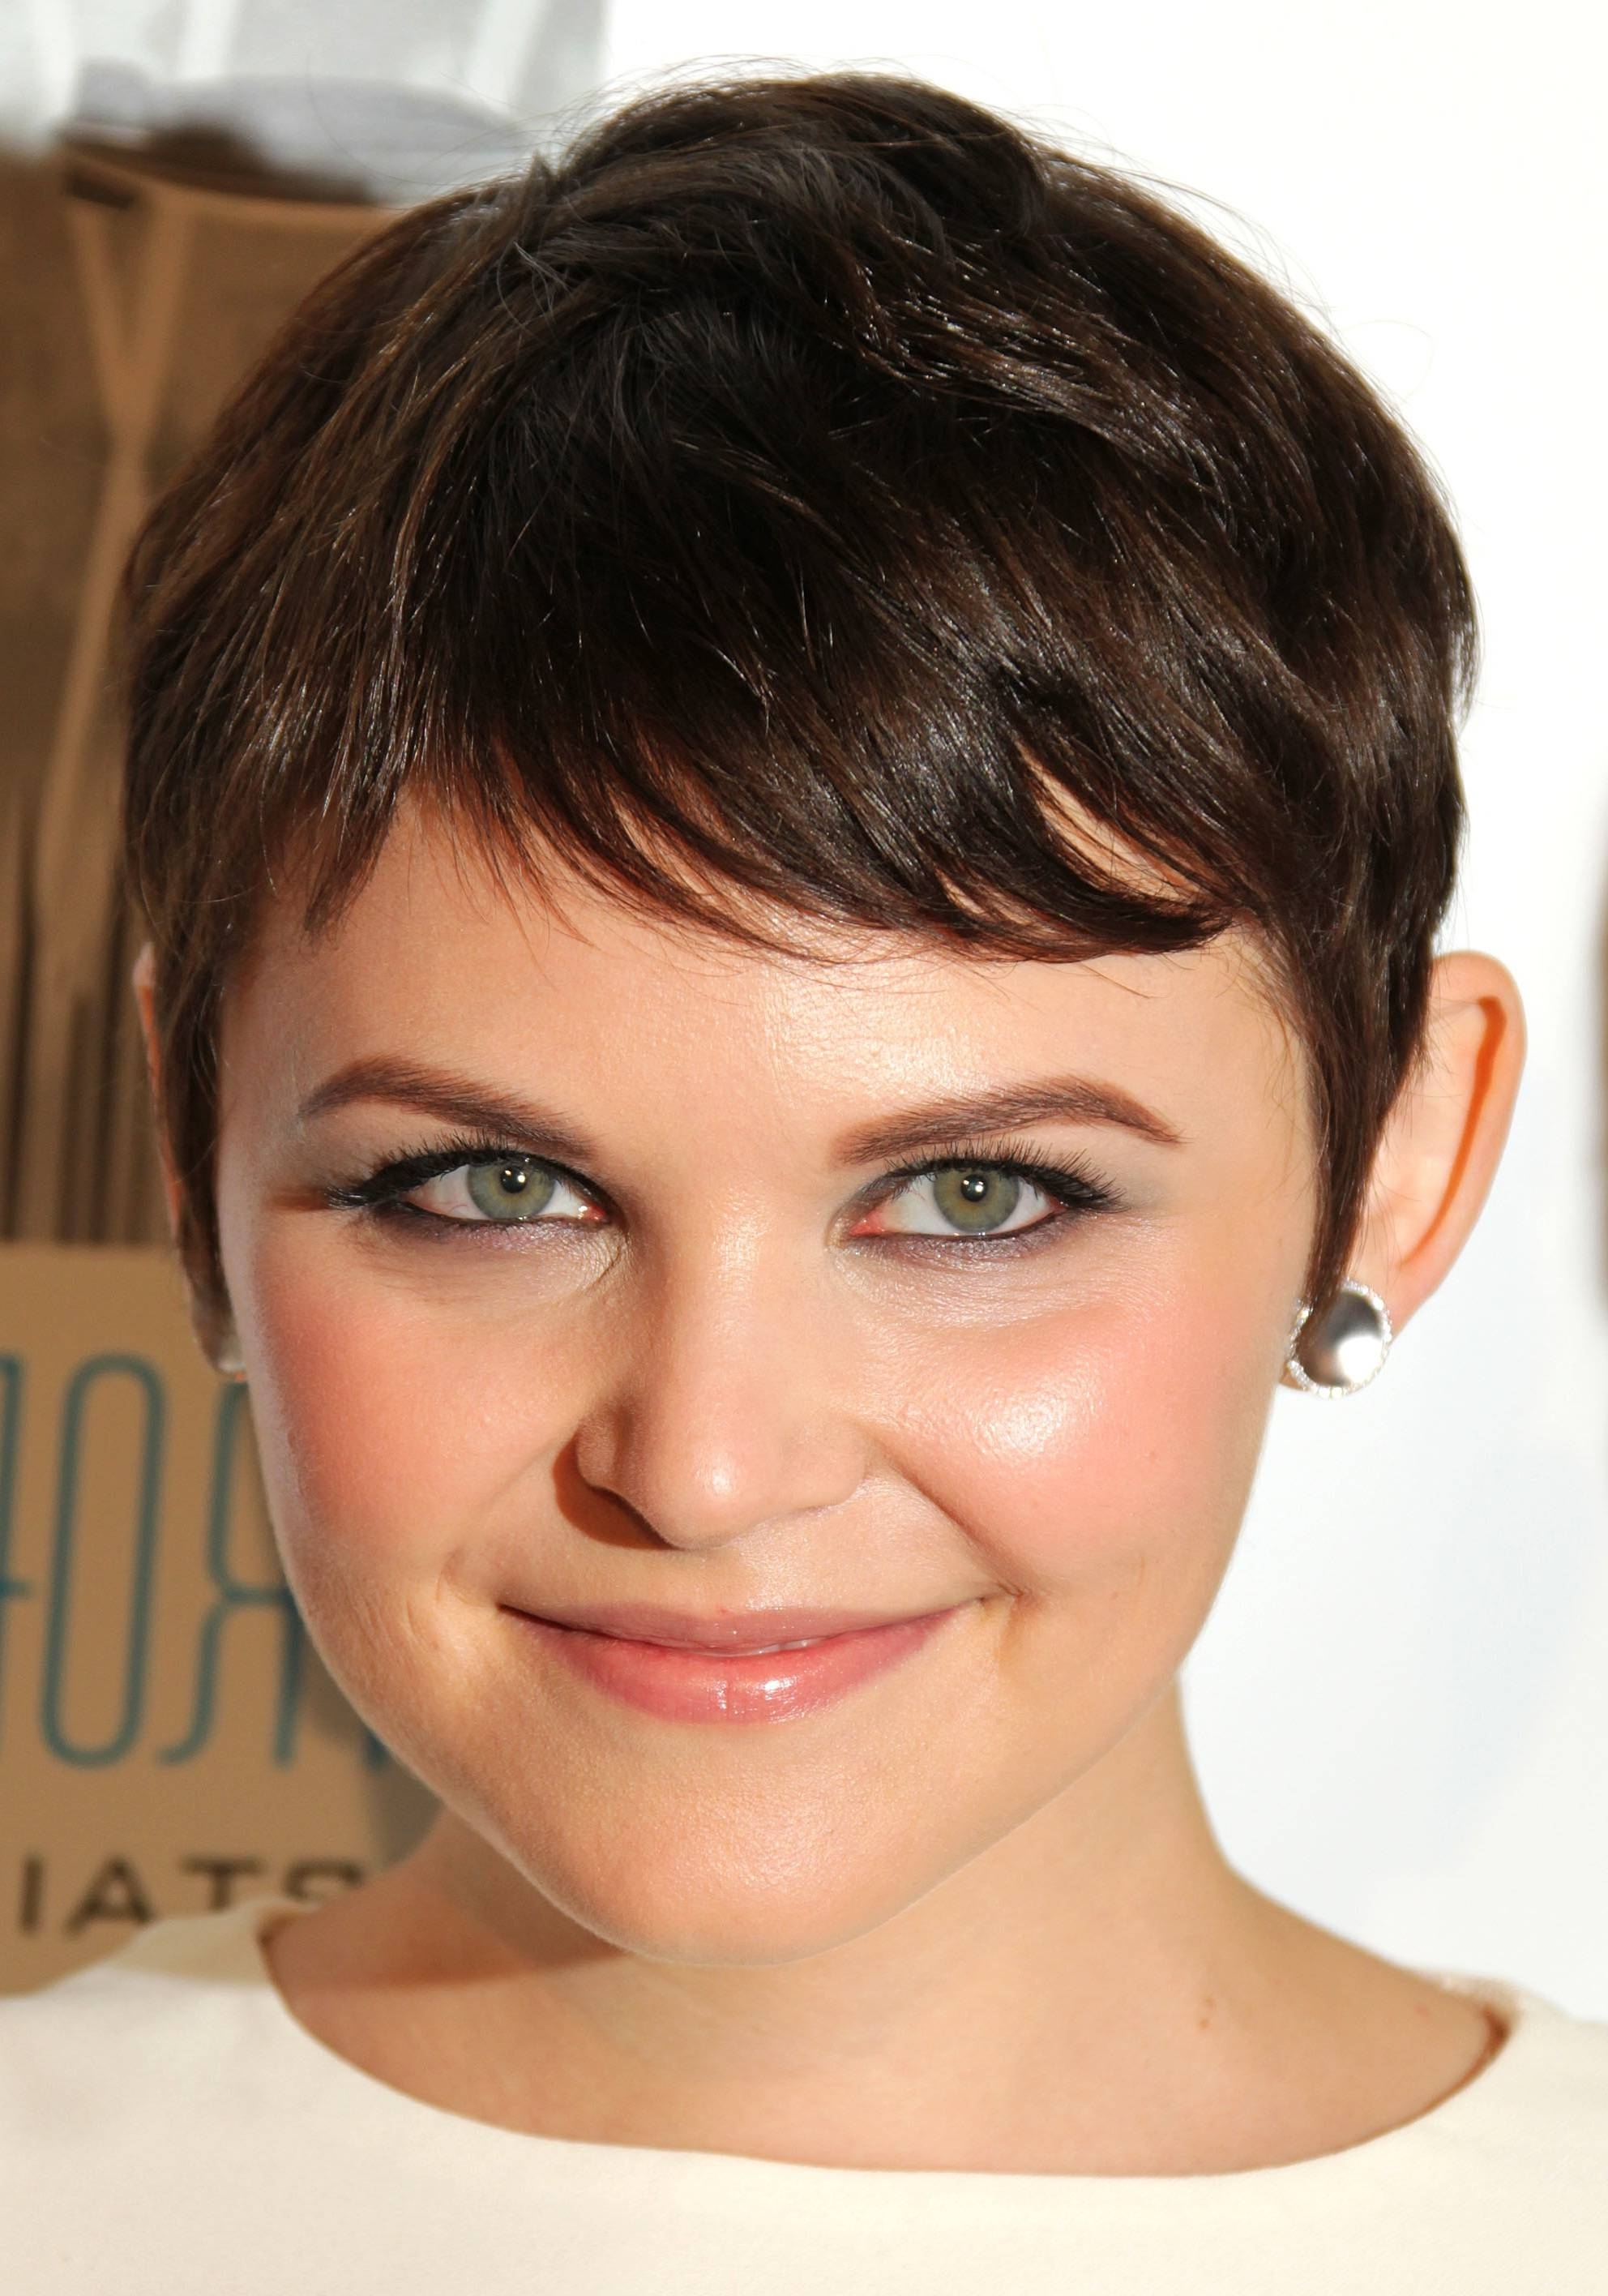 Pictures Of Hairstyles For Fine Thin Hair Celebrities Pixie Within 2018 Pixie Hairstyles For Fine Thin Hair (View 10 of 15)